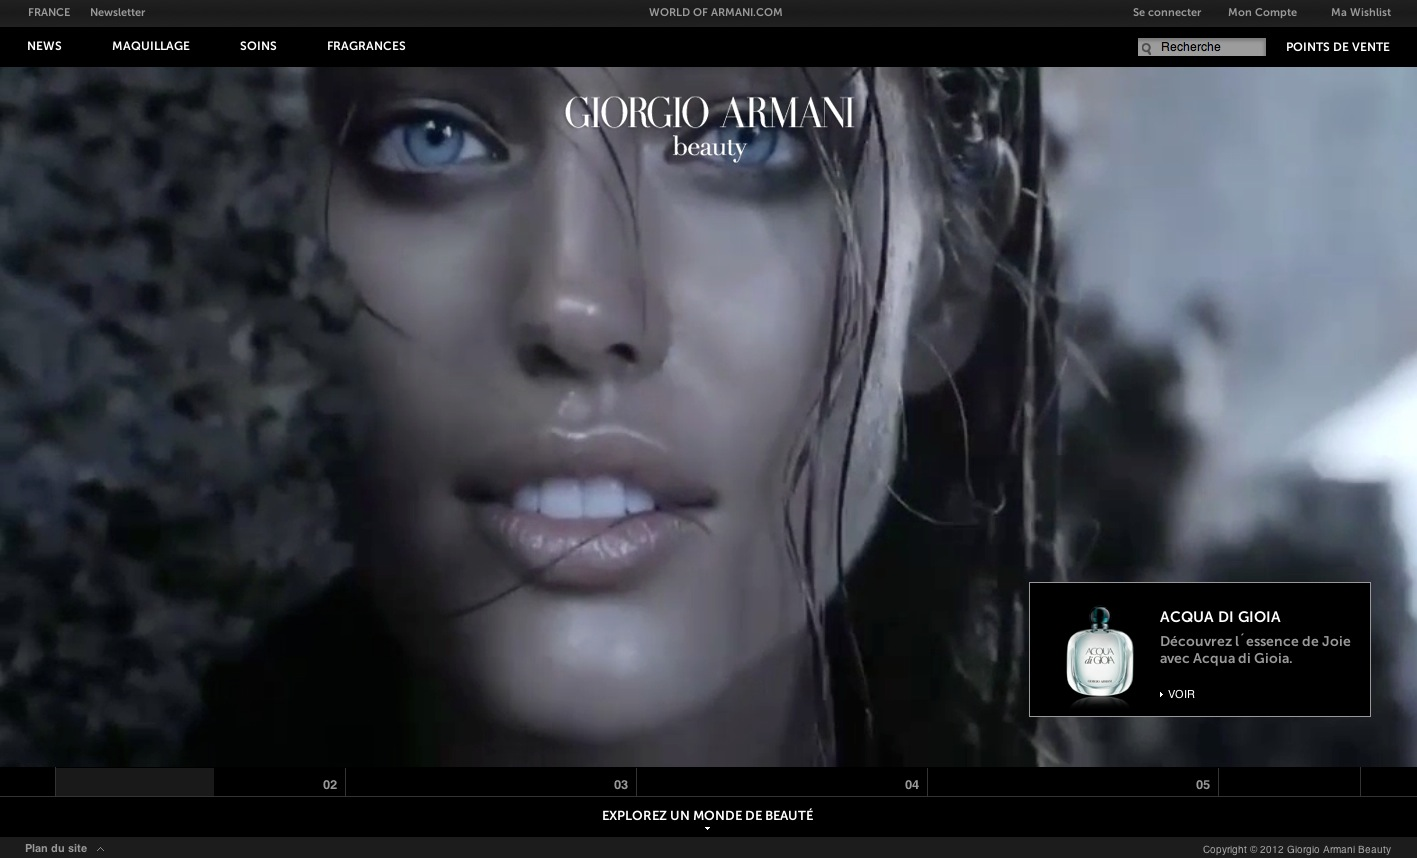 llllitl-armani-giorgio-armani-beauty-fragrance-site-web-website-plateforme-de-marque-parfum-essenza-made-by-digitas-juin-2012